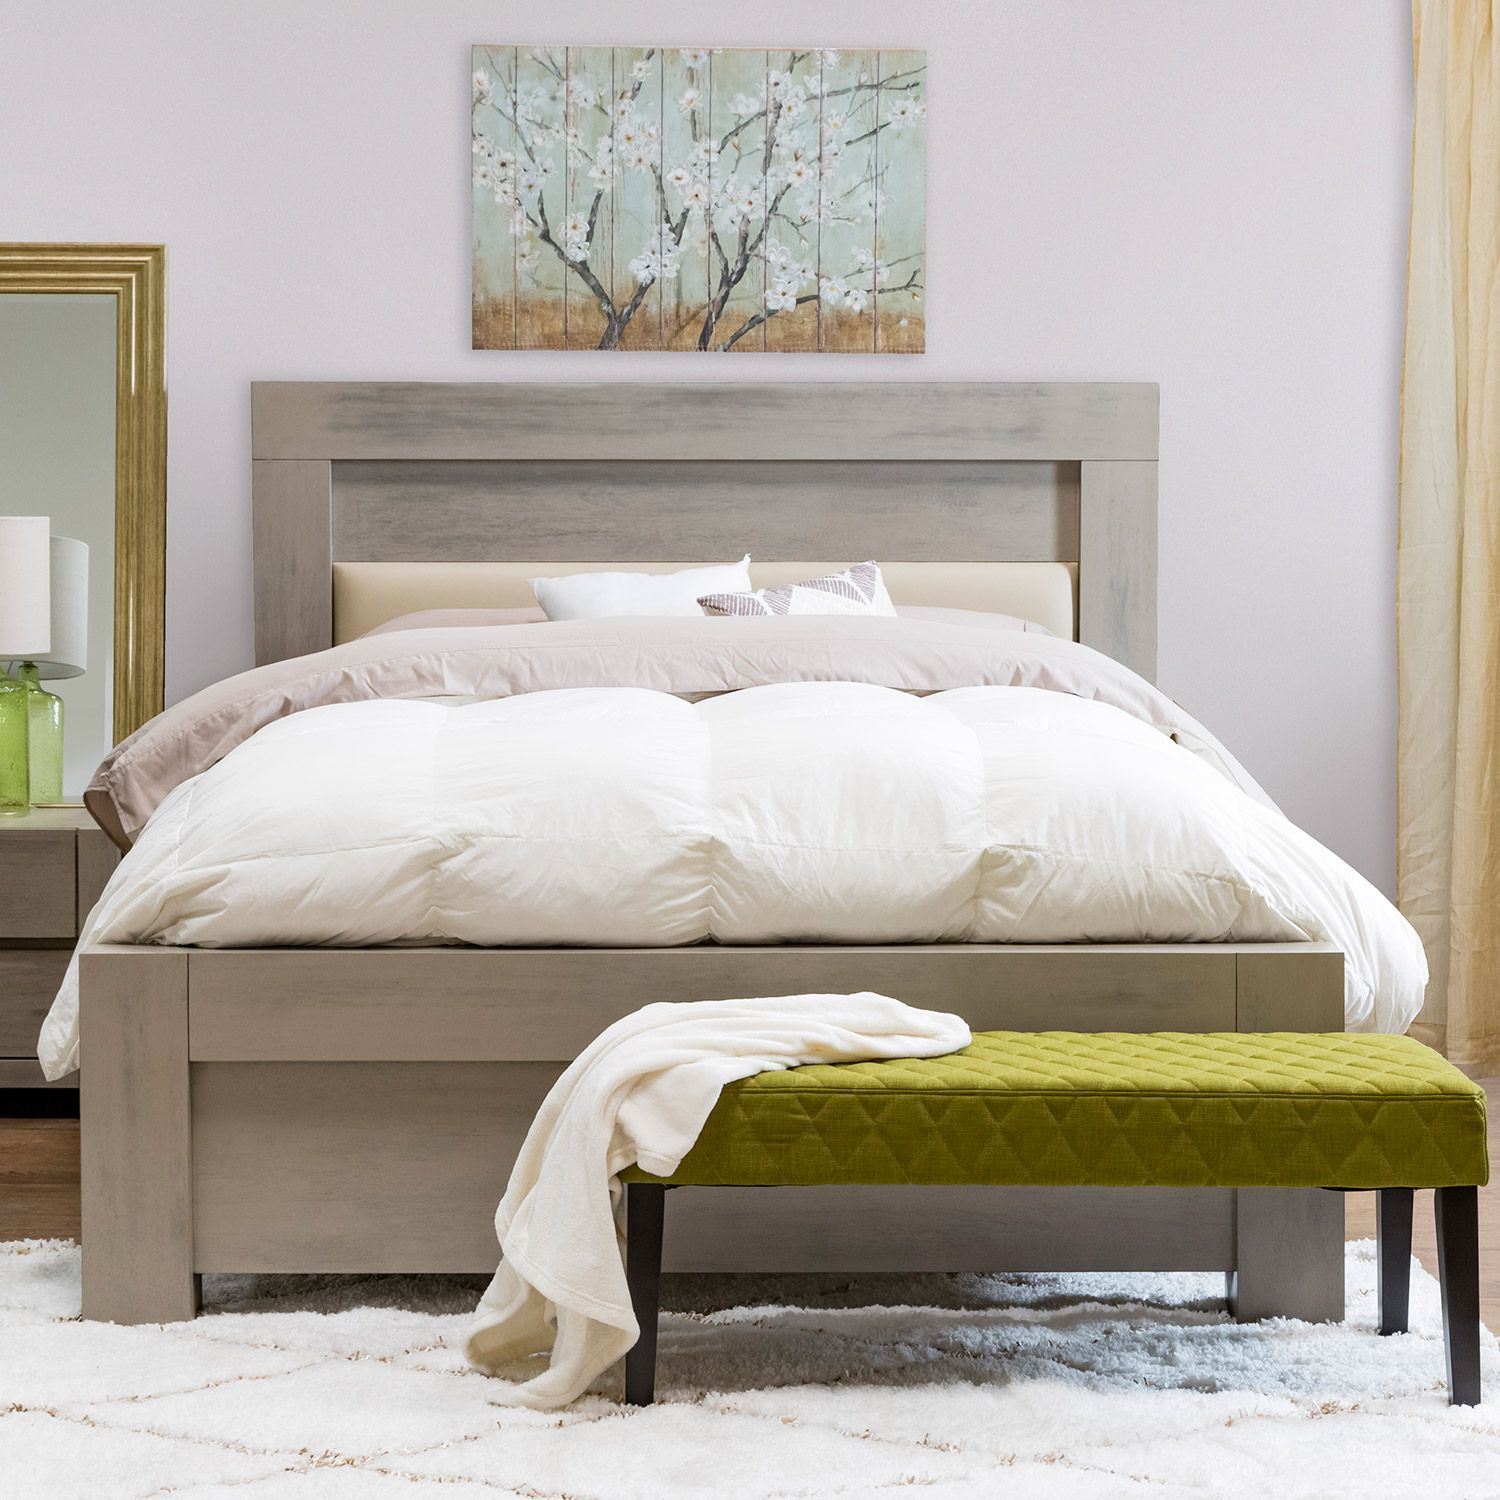 Liam Jazz Queen Bed Frame The Liam Jazz S Light Wood Color Brings